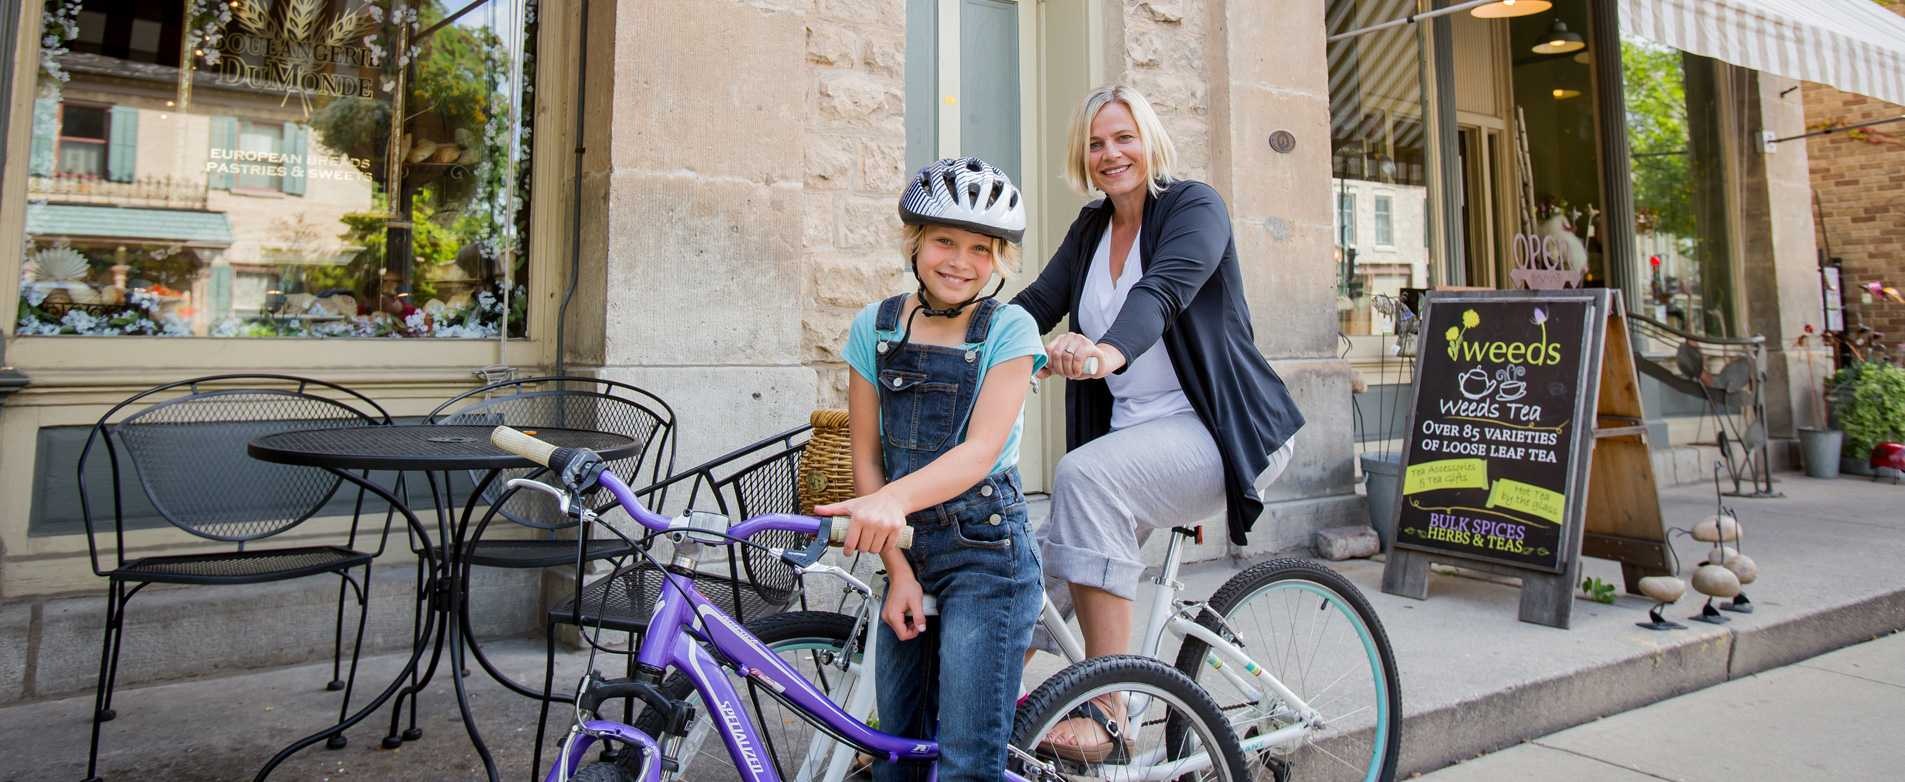 Mom-and-Daughter-on-Bikes-Downtown-Cedarburg